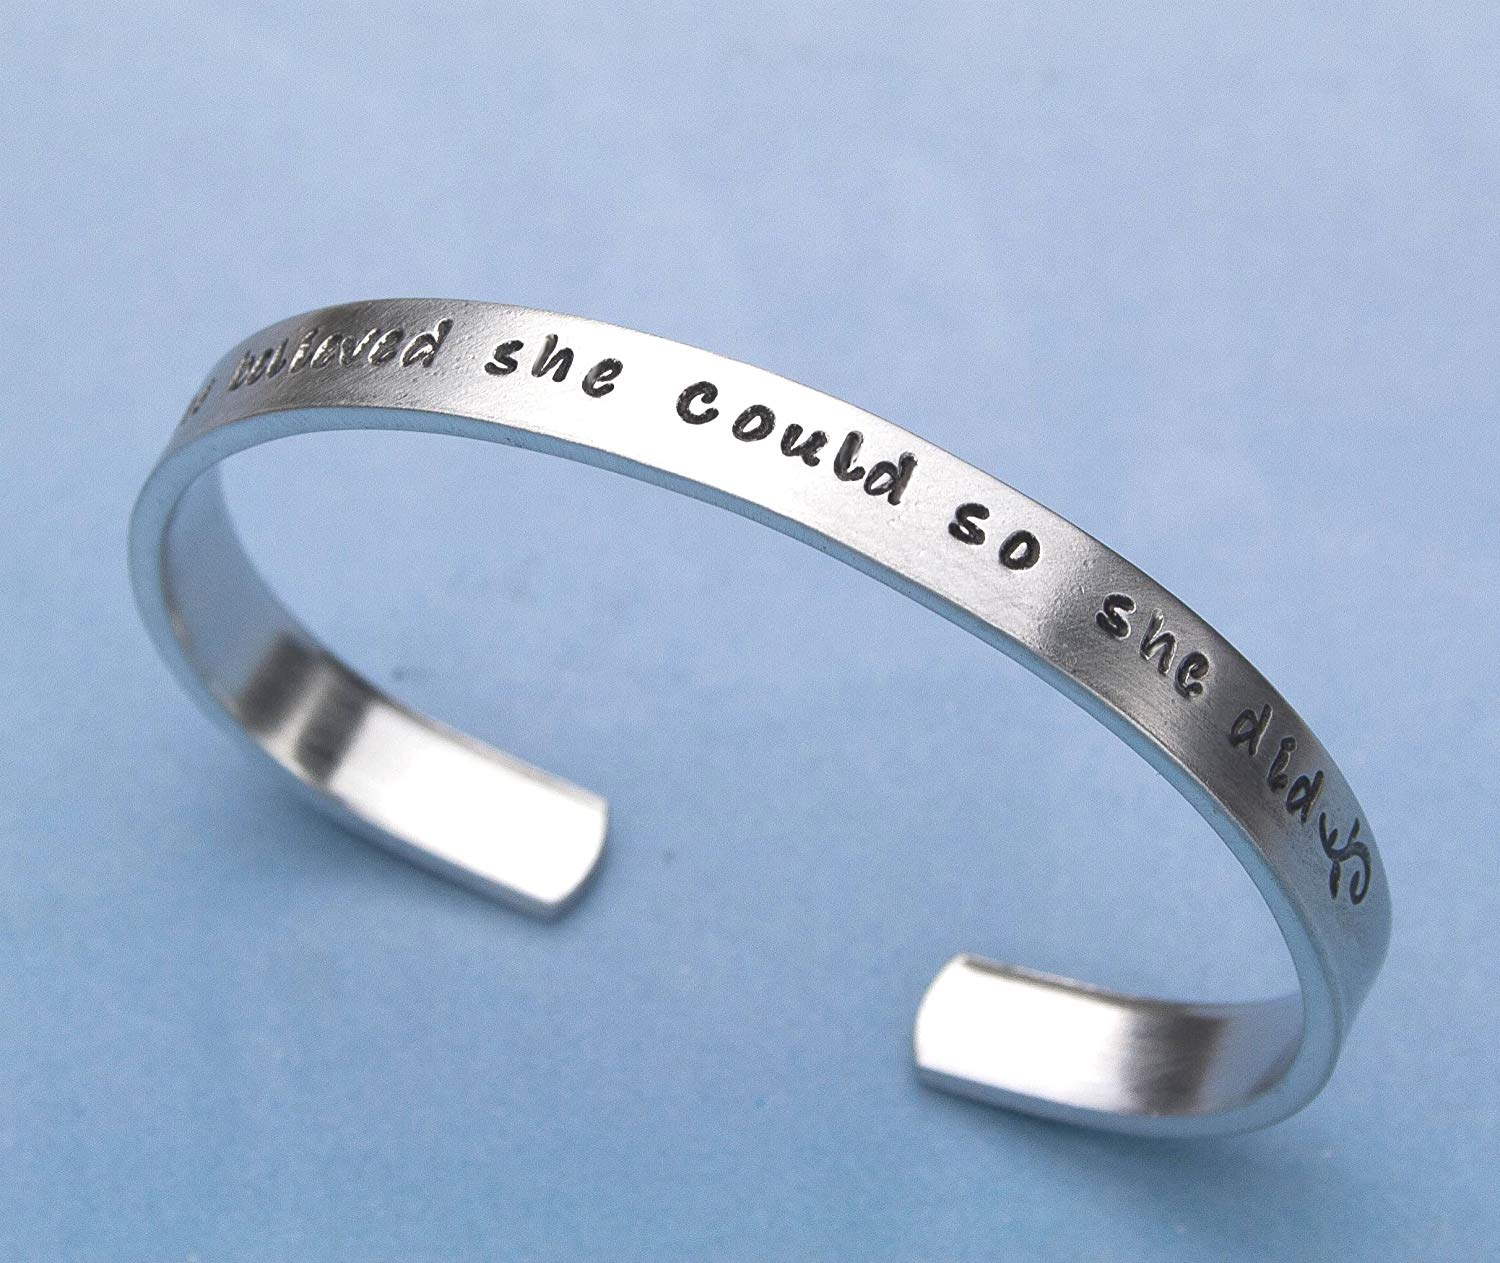 "Inspirational Bracelet, Quote Jewelry, She Believed She Could So She Did Hand Stamped Bracelet, Aluminum 6"" Cuff, Graduation Gift, Gift for Her"